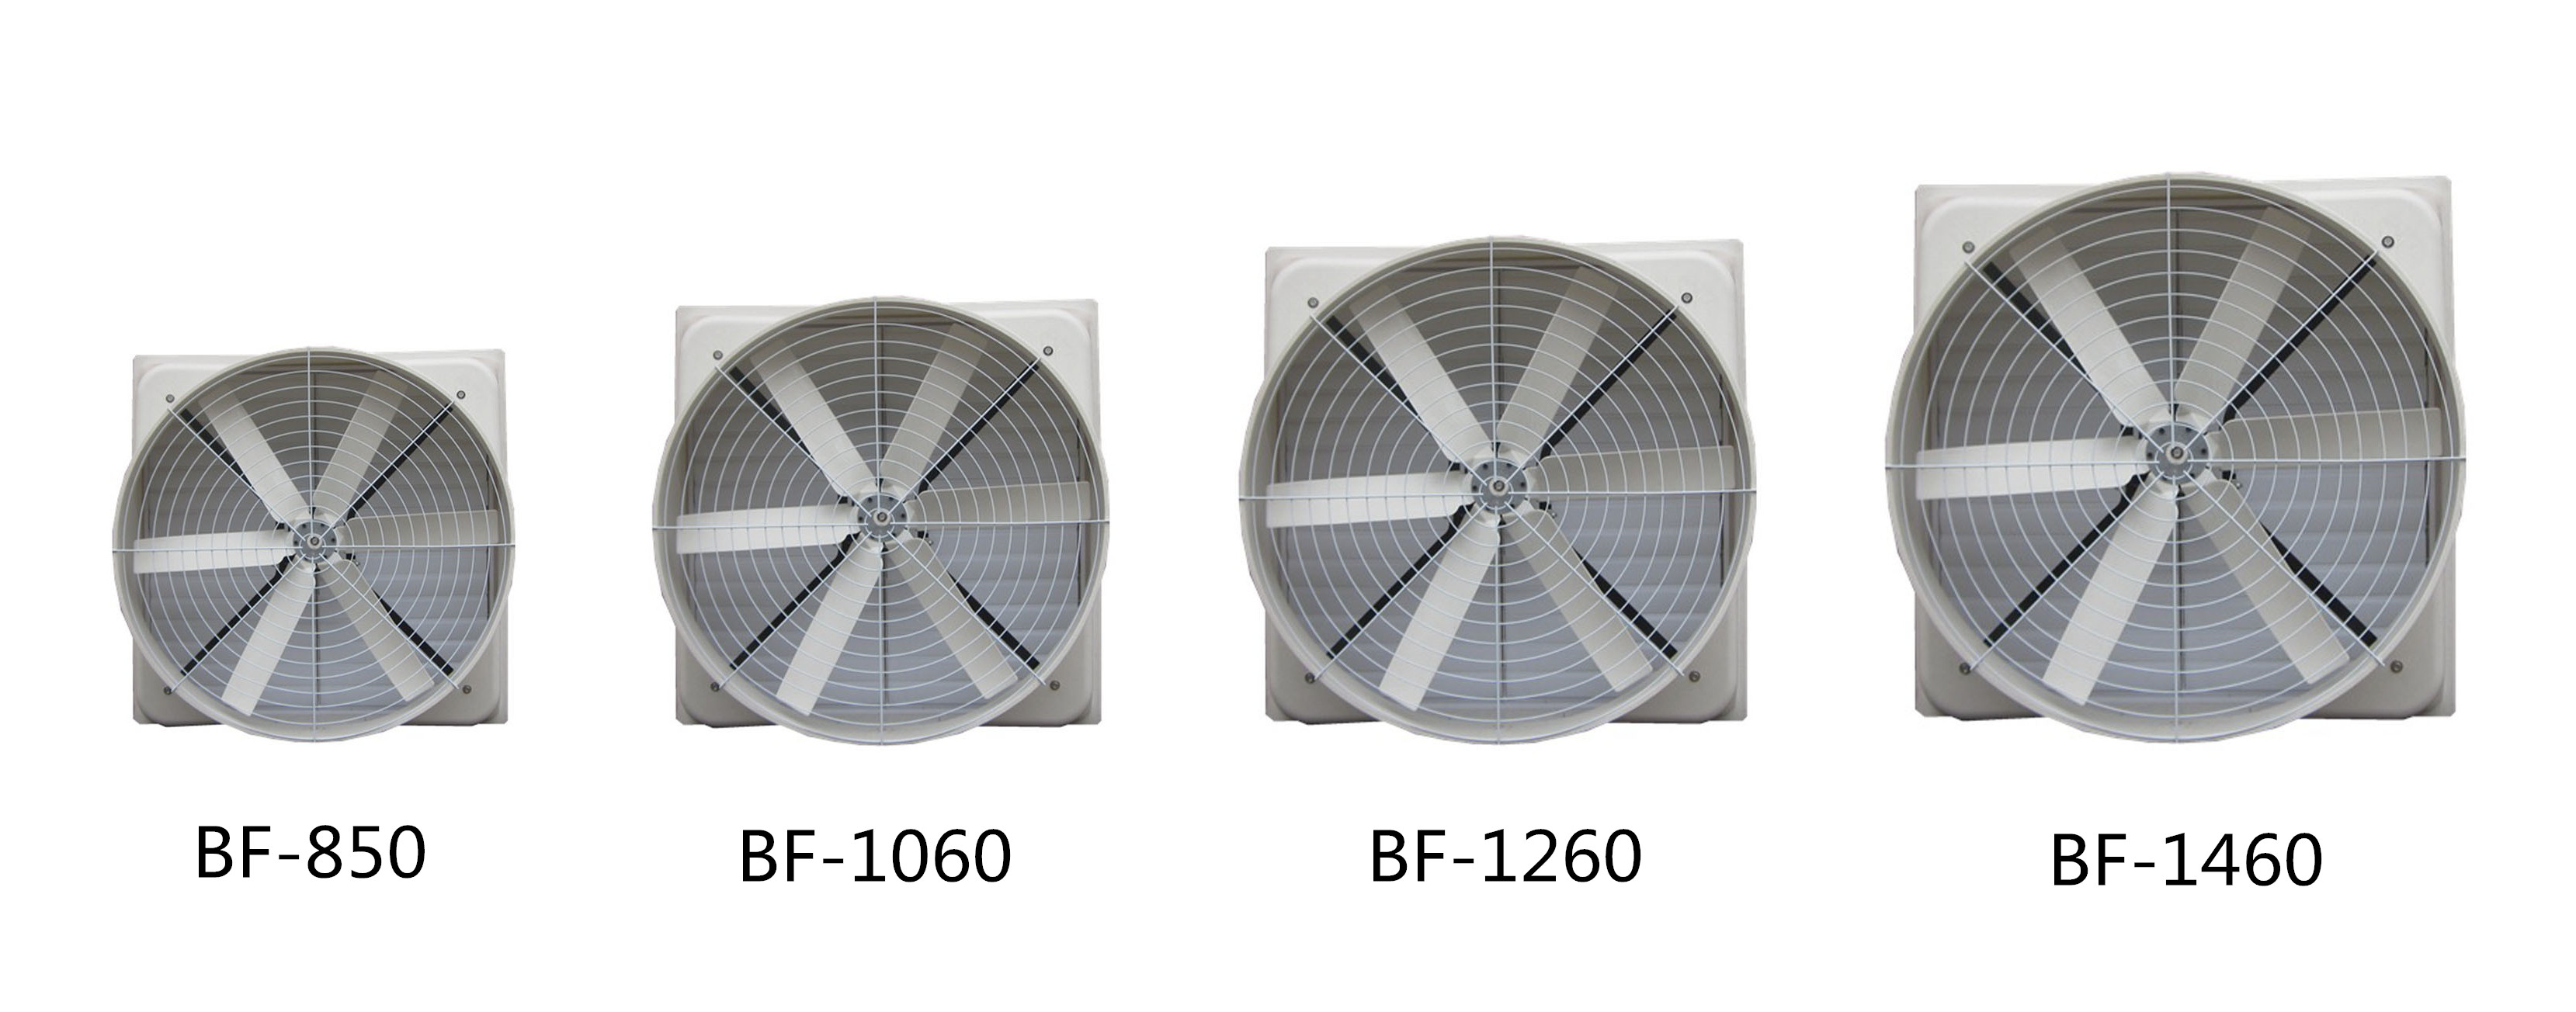 best sale industrial wall fan thermostat controlled exhaust fan view exhaust fan with thermostat bf product details from bright future intl holding corp on alibaba com